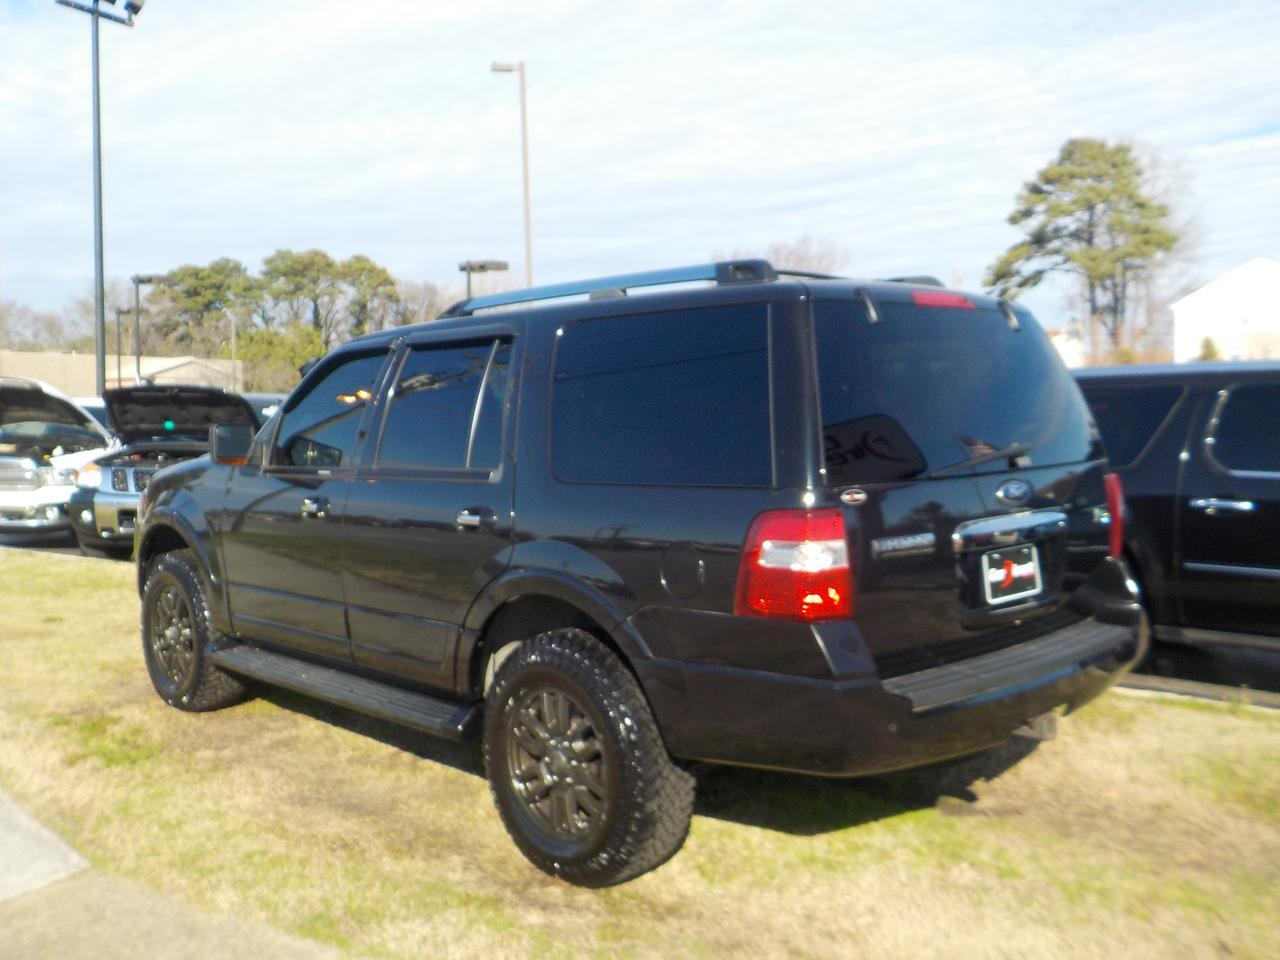 2013 FORD EXPEDITION LIMITED 4X4, WARRANTY, REMOTE START, POWER LIFTGATE, PARKING SENSORS, BACKUP CAMERA, SUNROOF! Virginia Beach VA